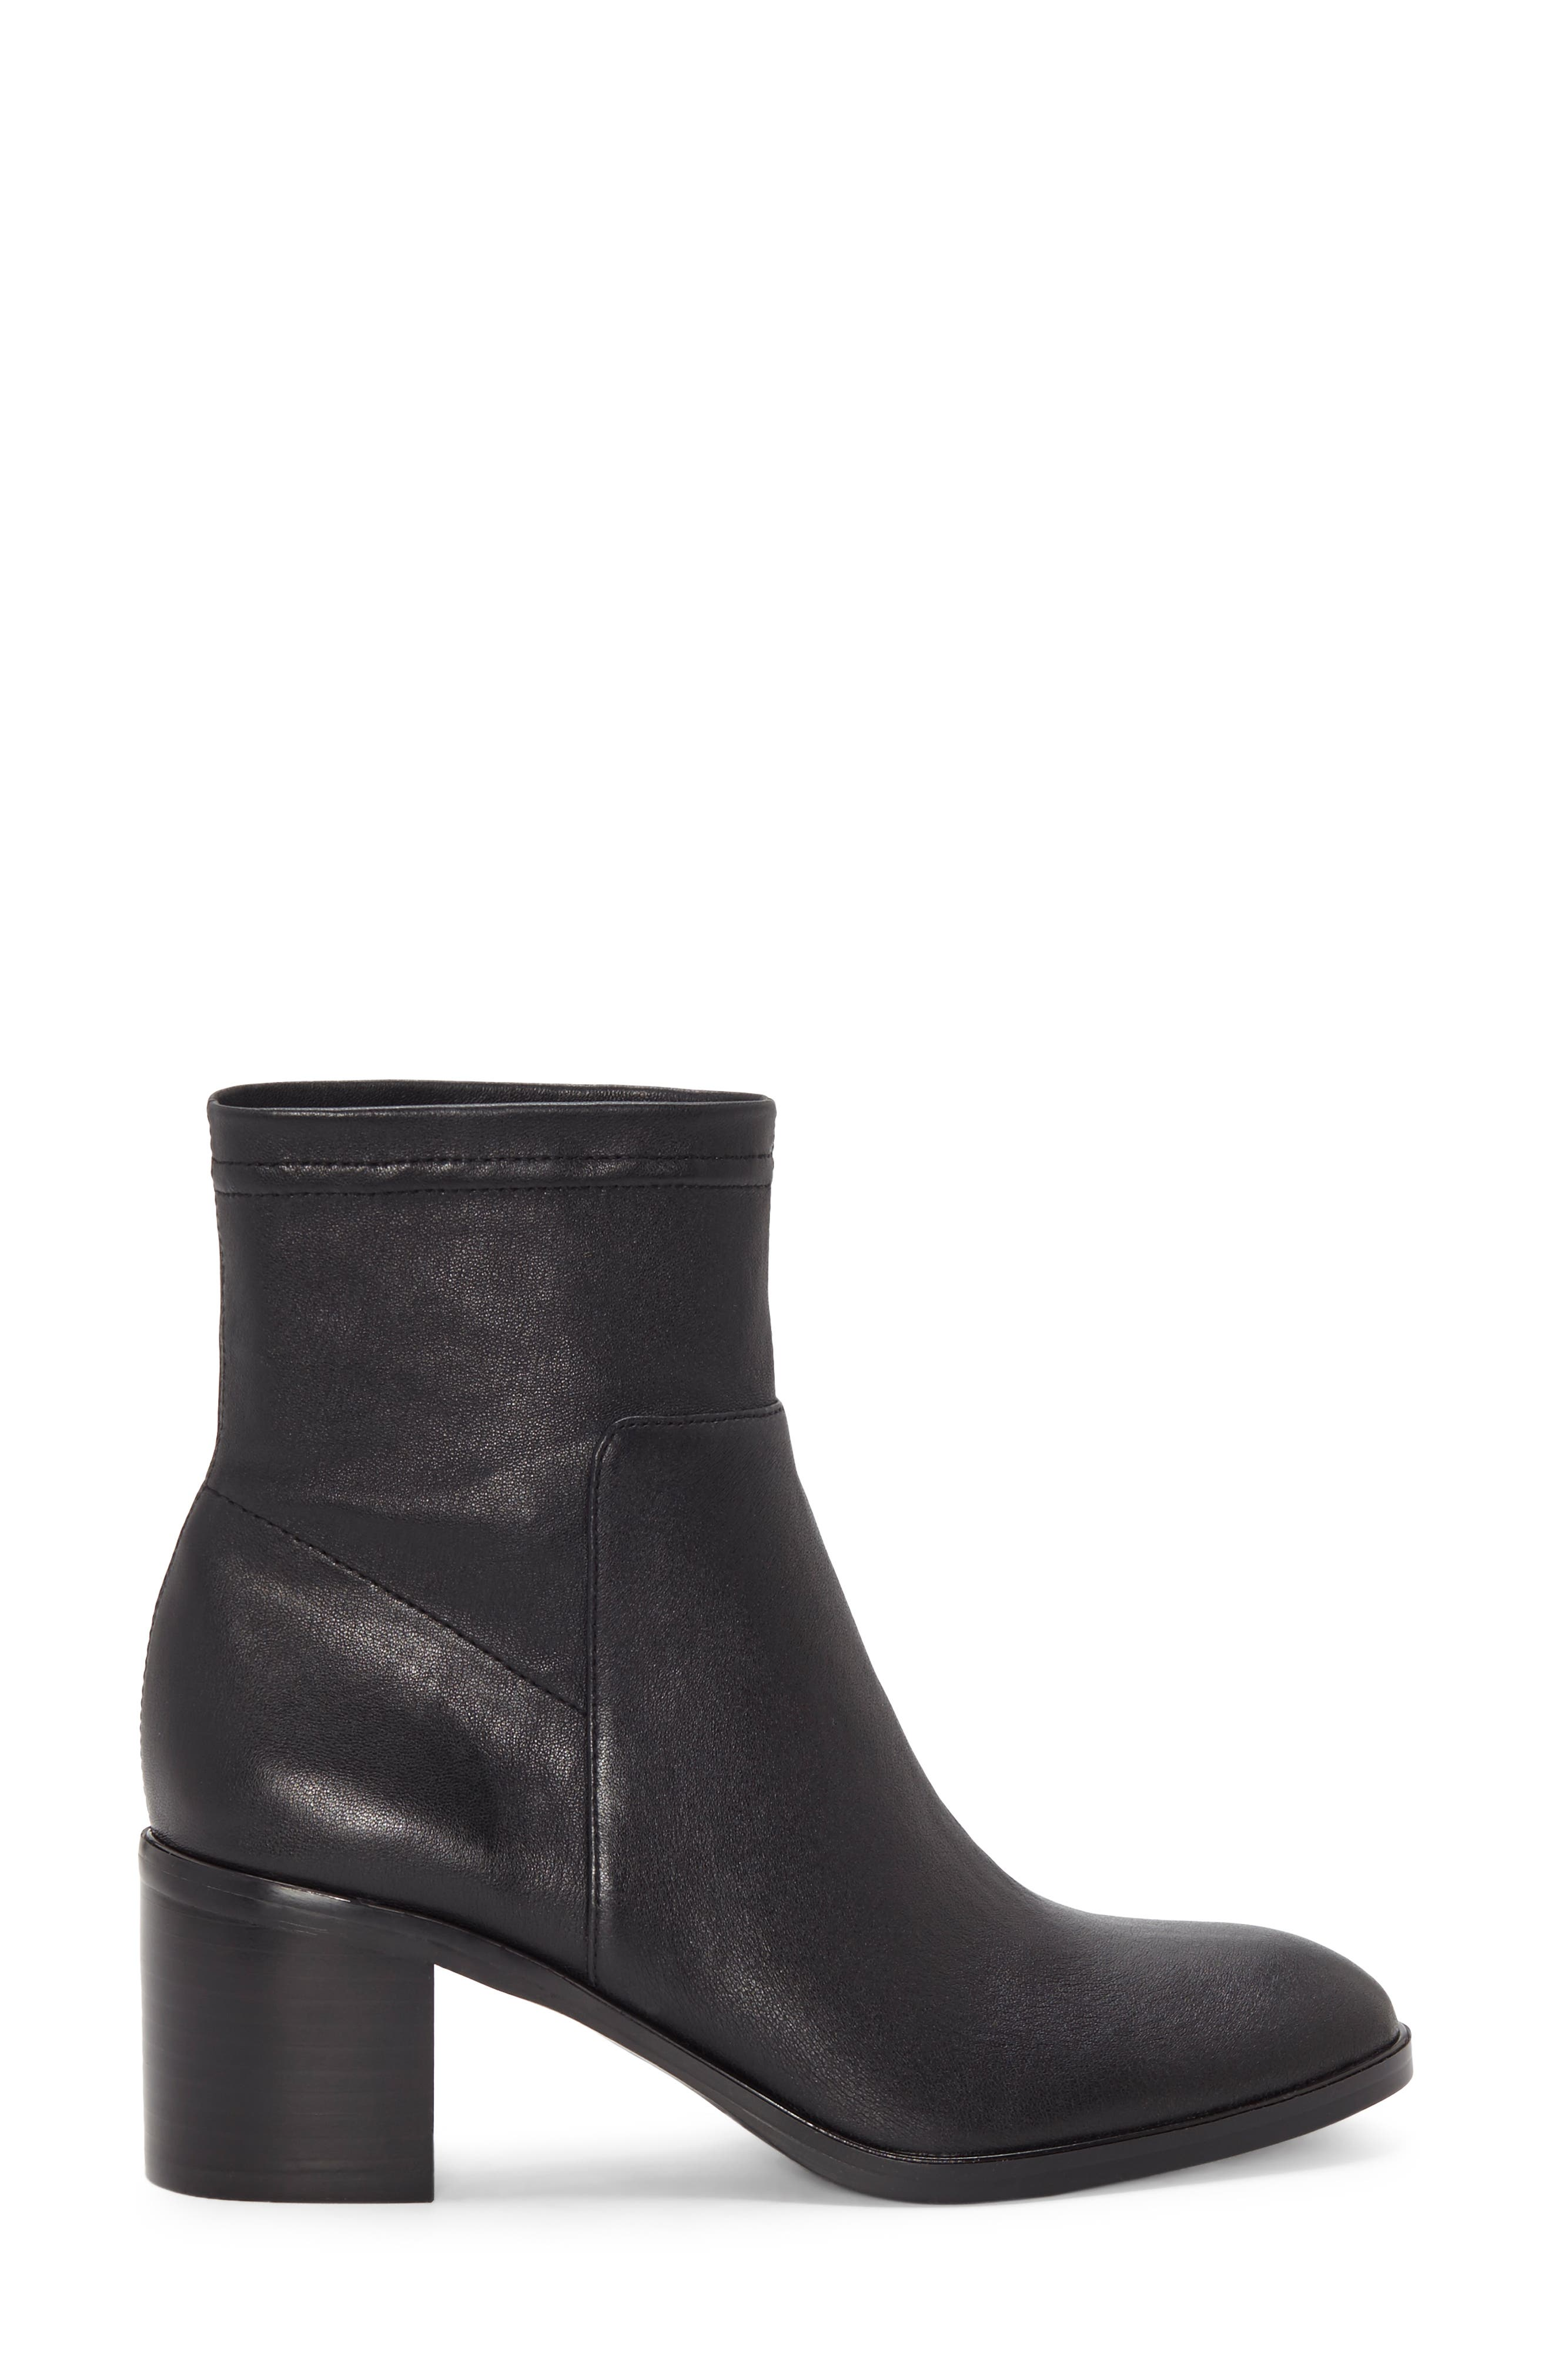 Jeandra Bootie,                             Alternate thumbnail 3, color,                             BLACK LEATHER